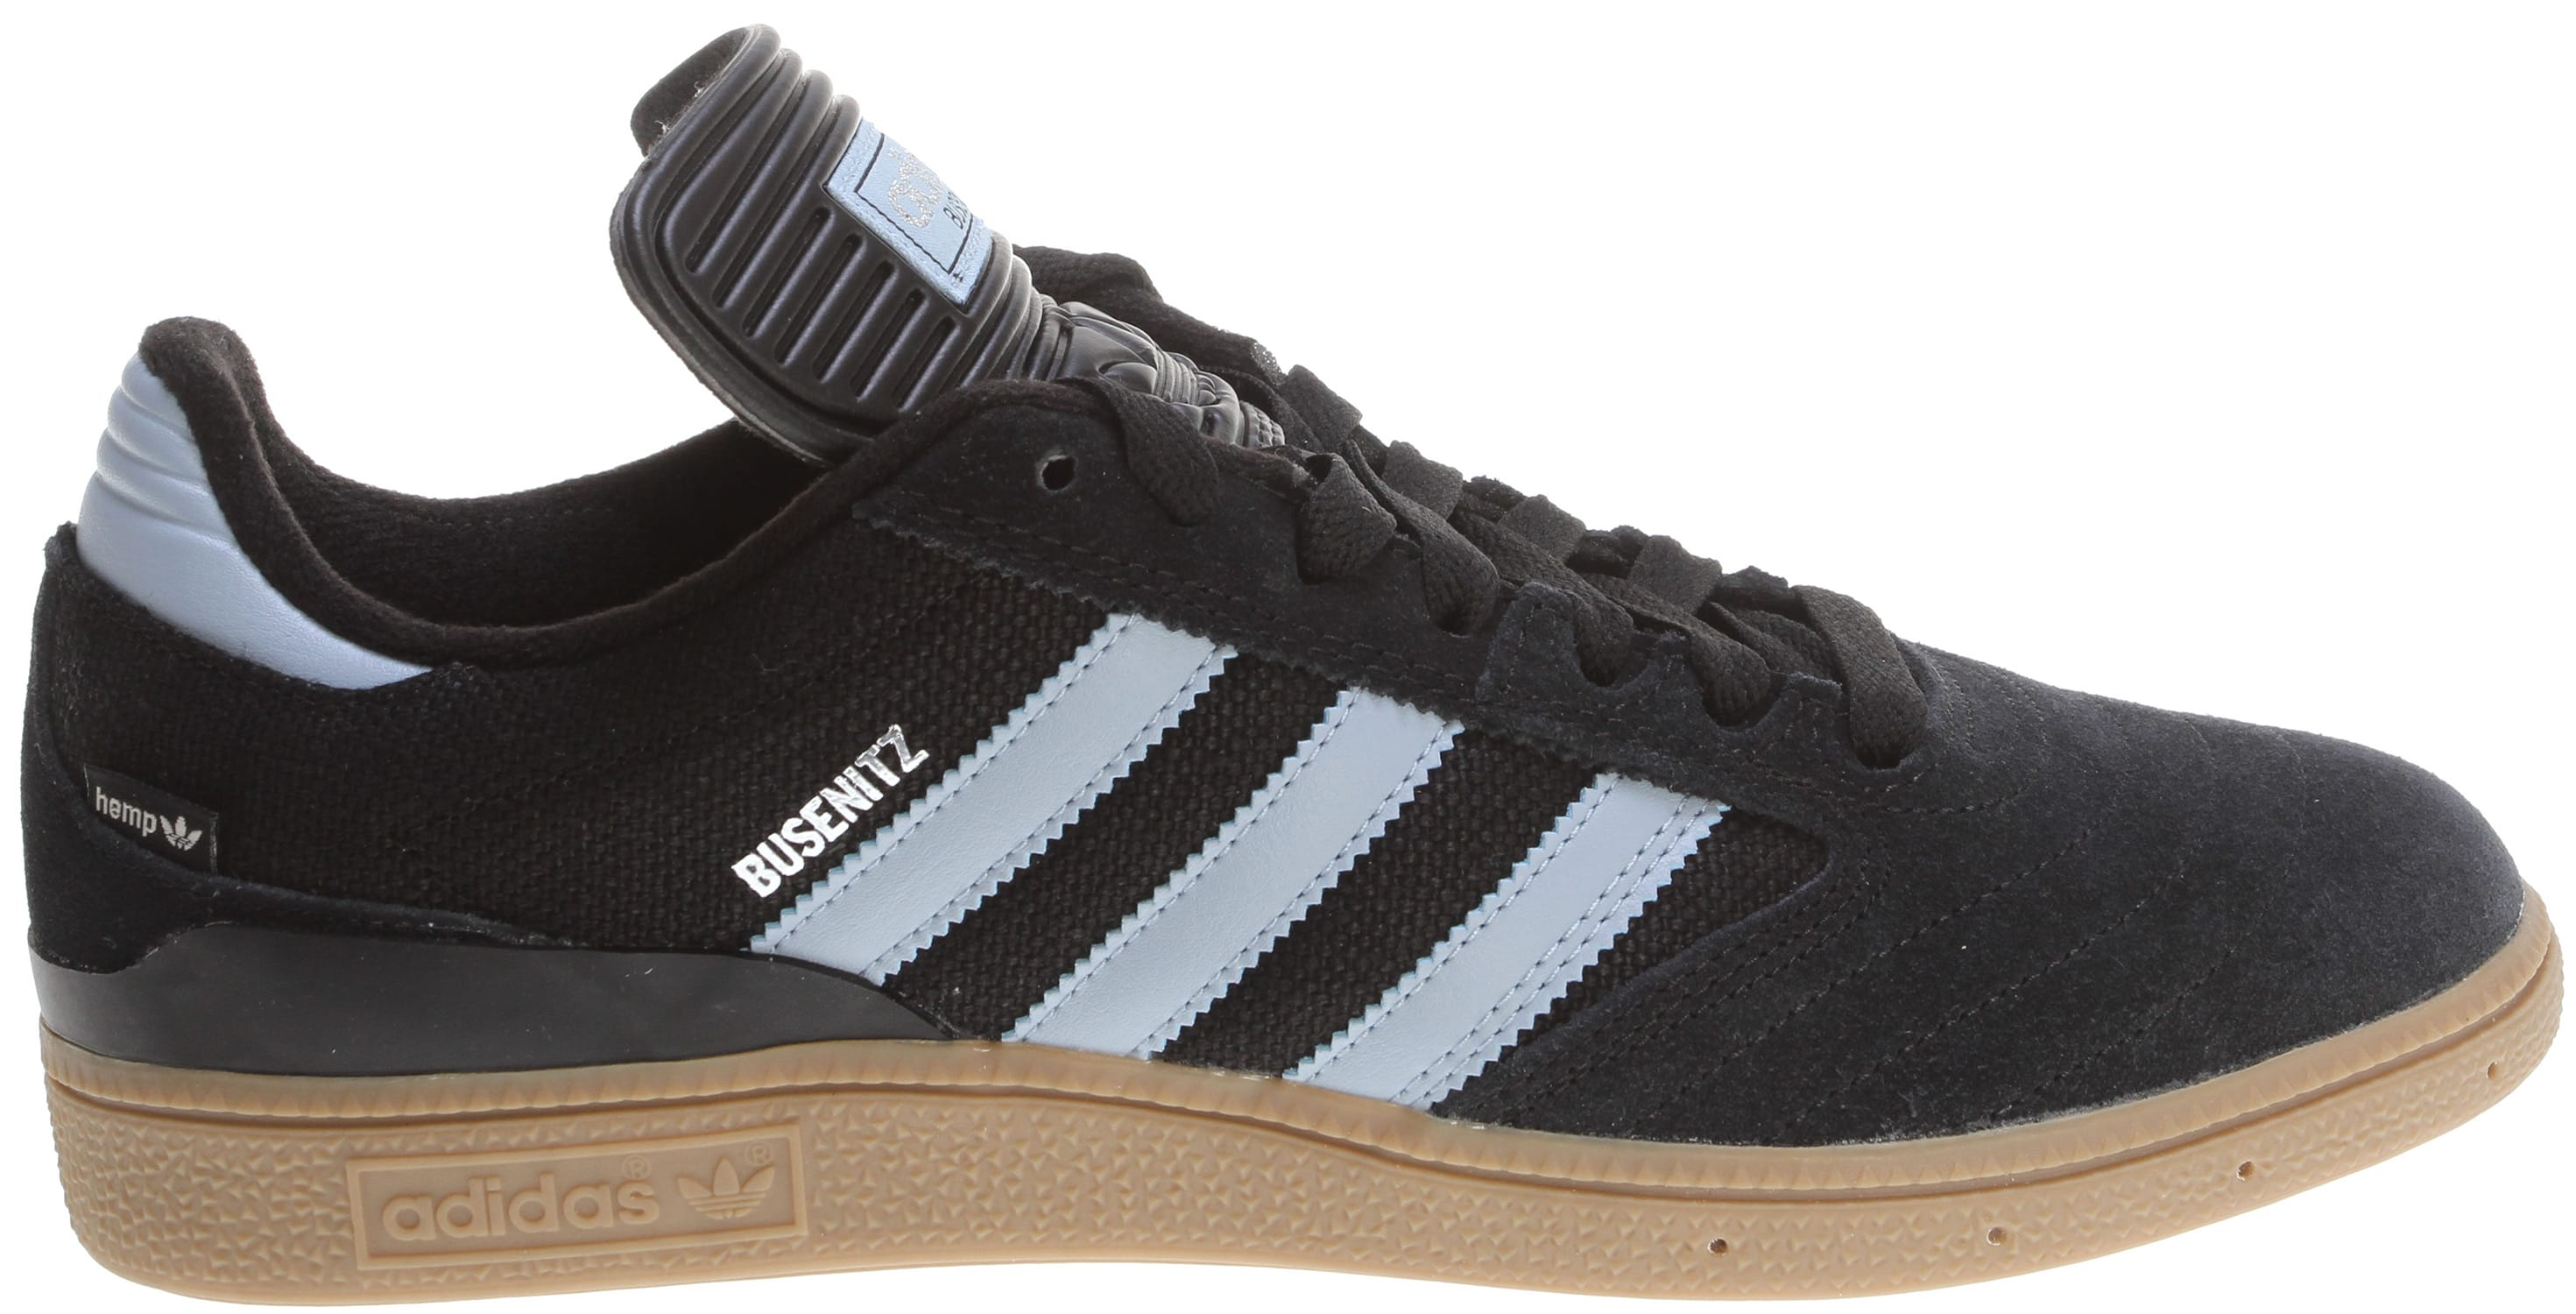 adidas busenitz skate shoes mens